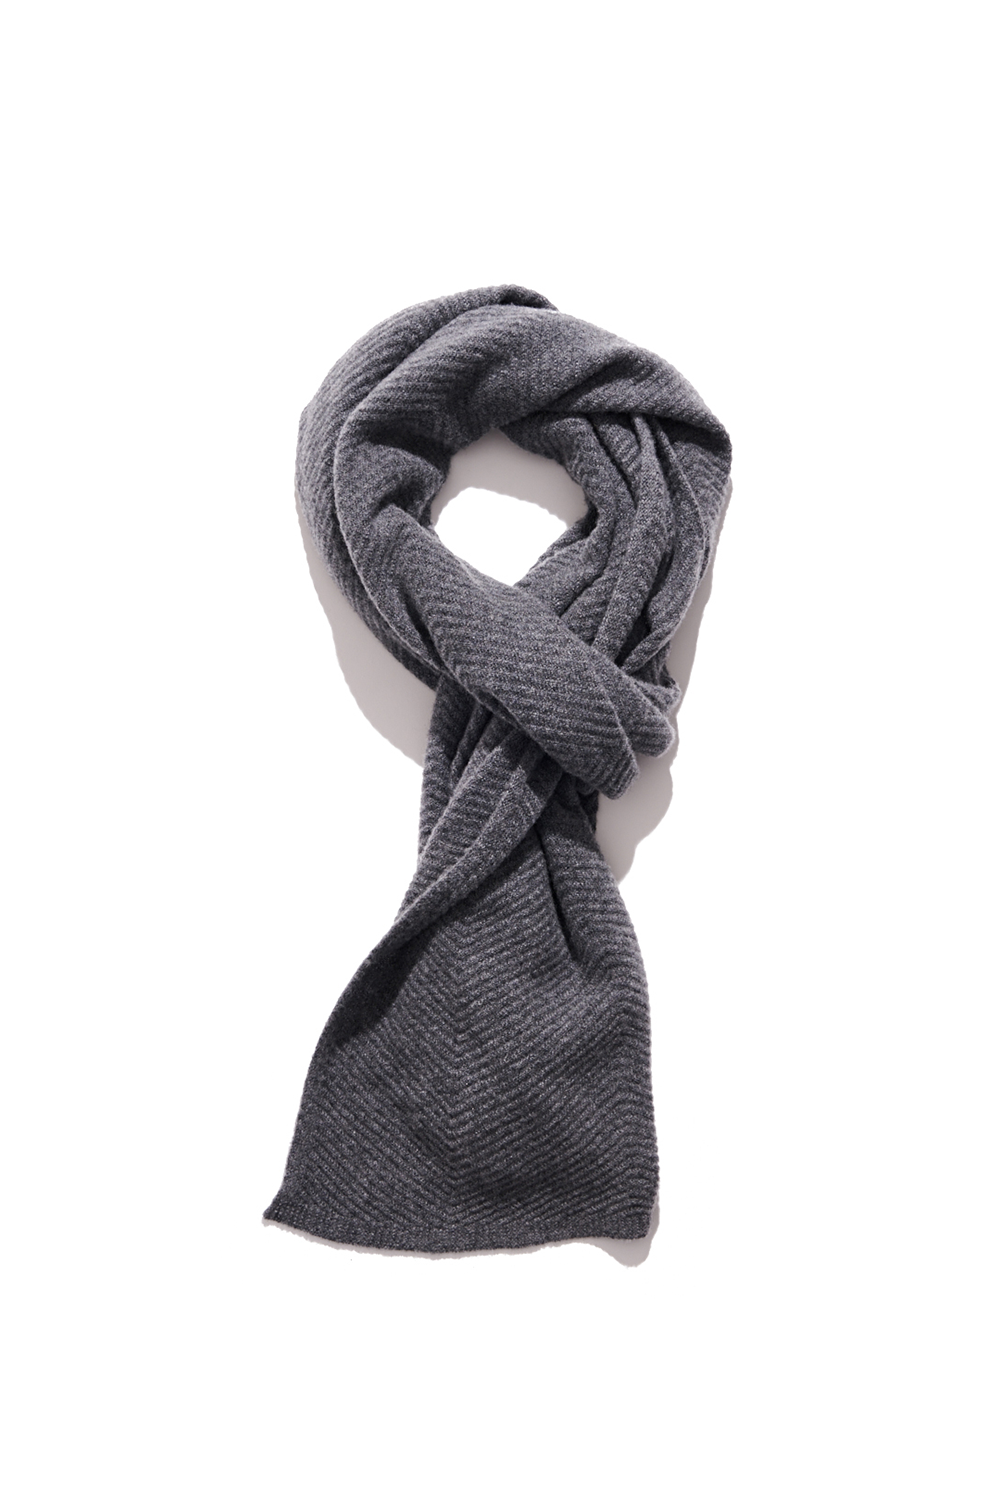 Premium pure cashmere100 whole-garment knitting shawl and scarf - Dark gray (인기 상품)